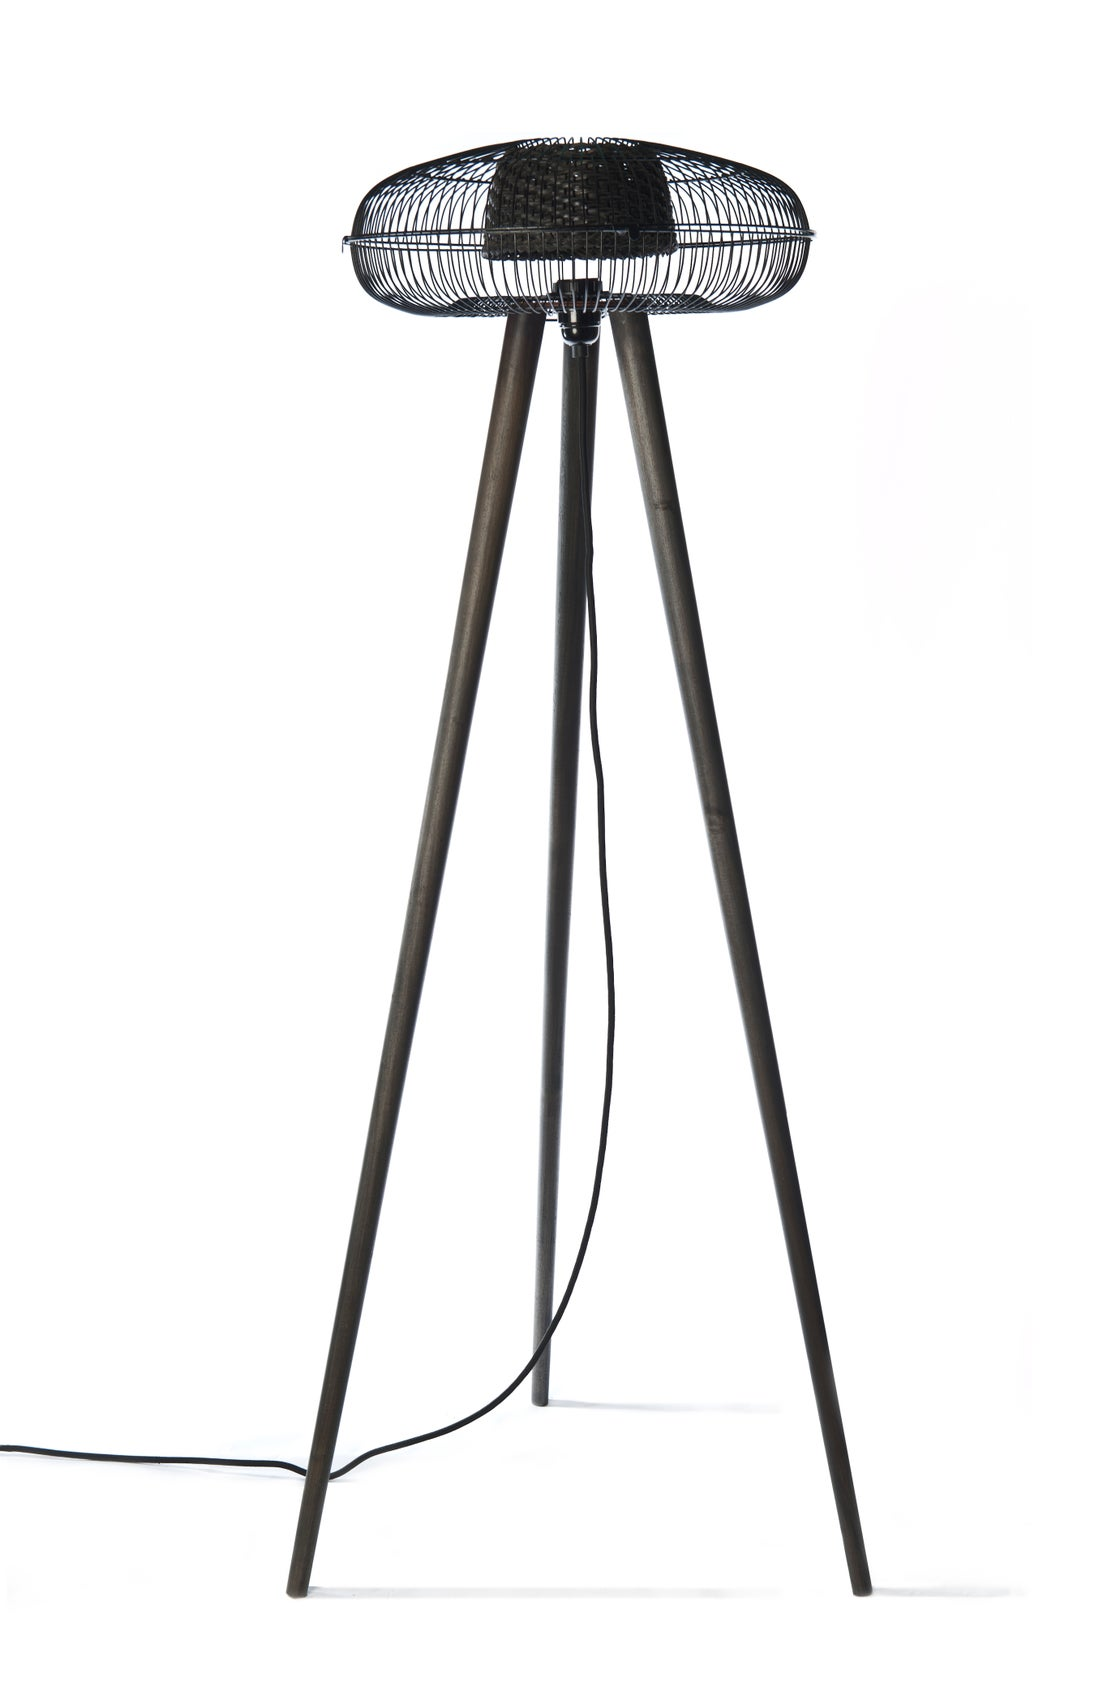 Image of FAN floor lamp~ Black